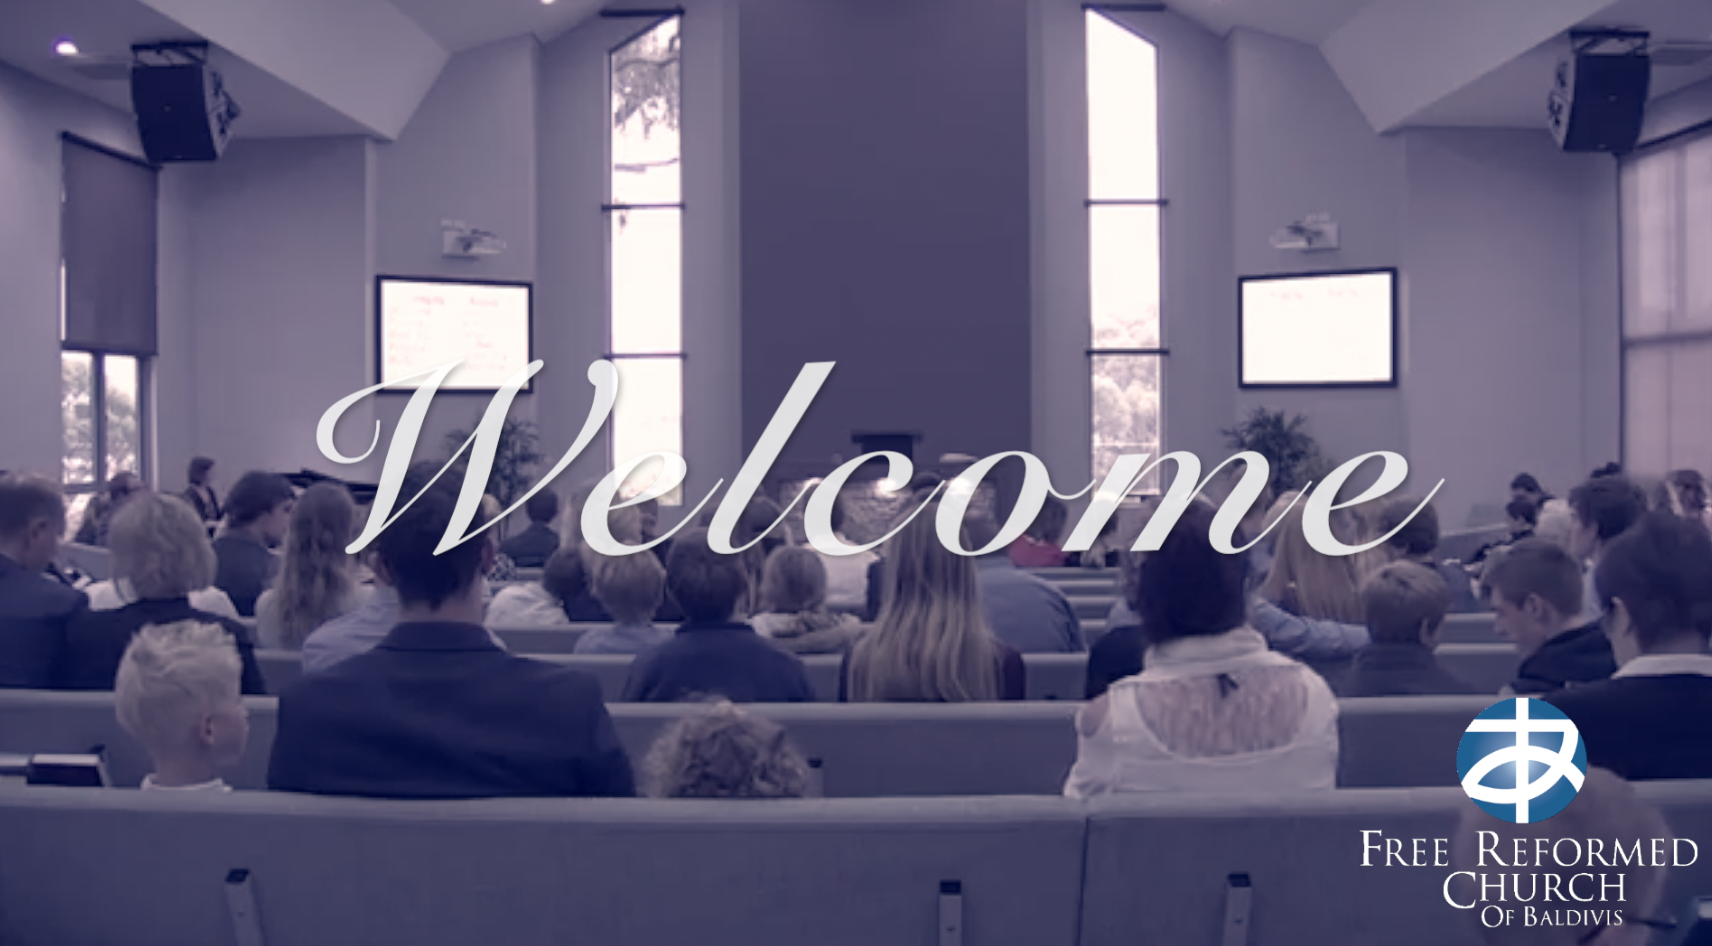 Live | Free Reformed Church of Baldivis